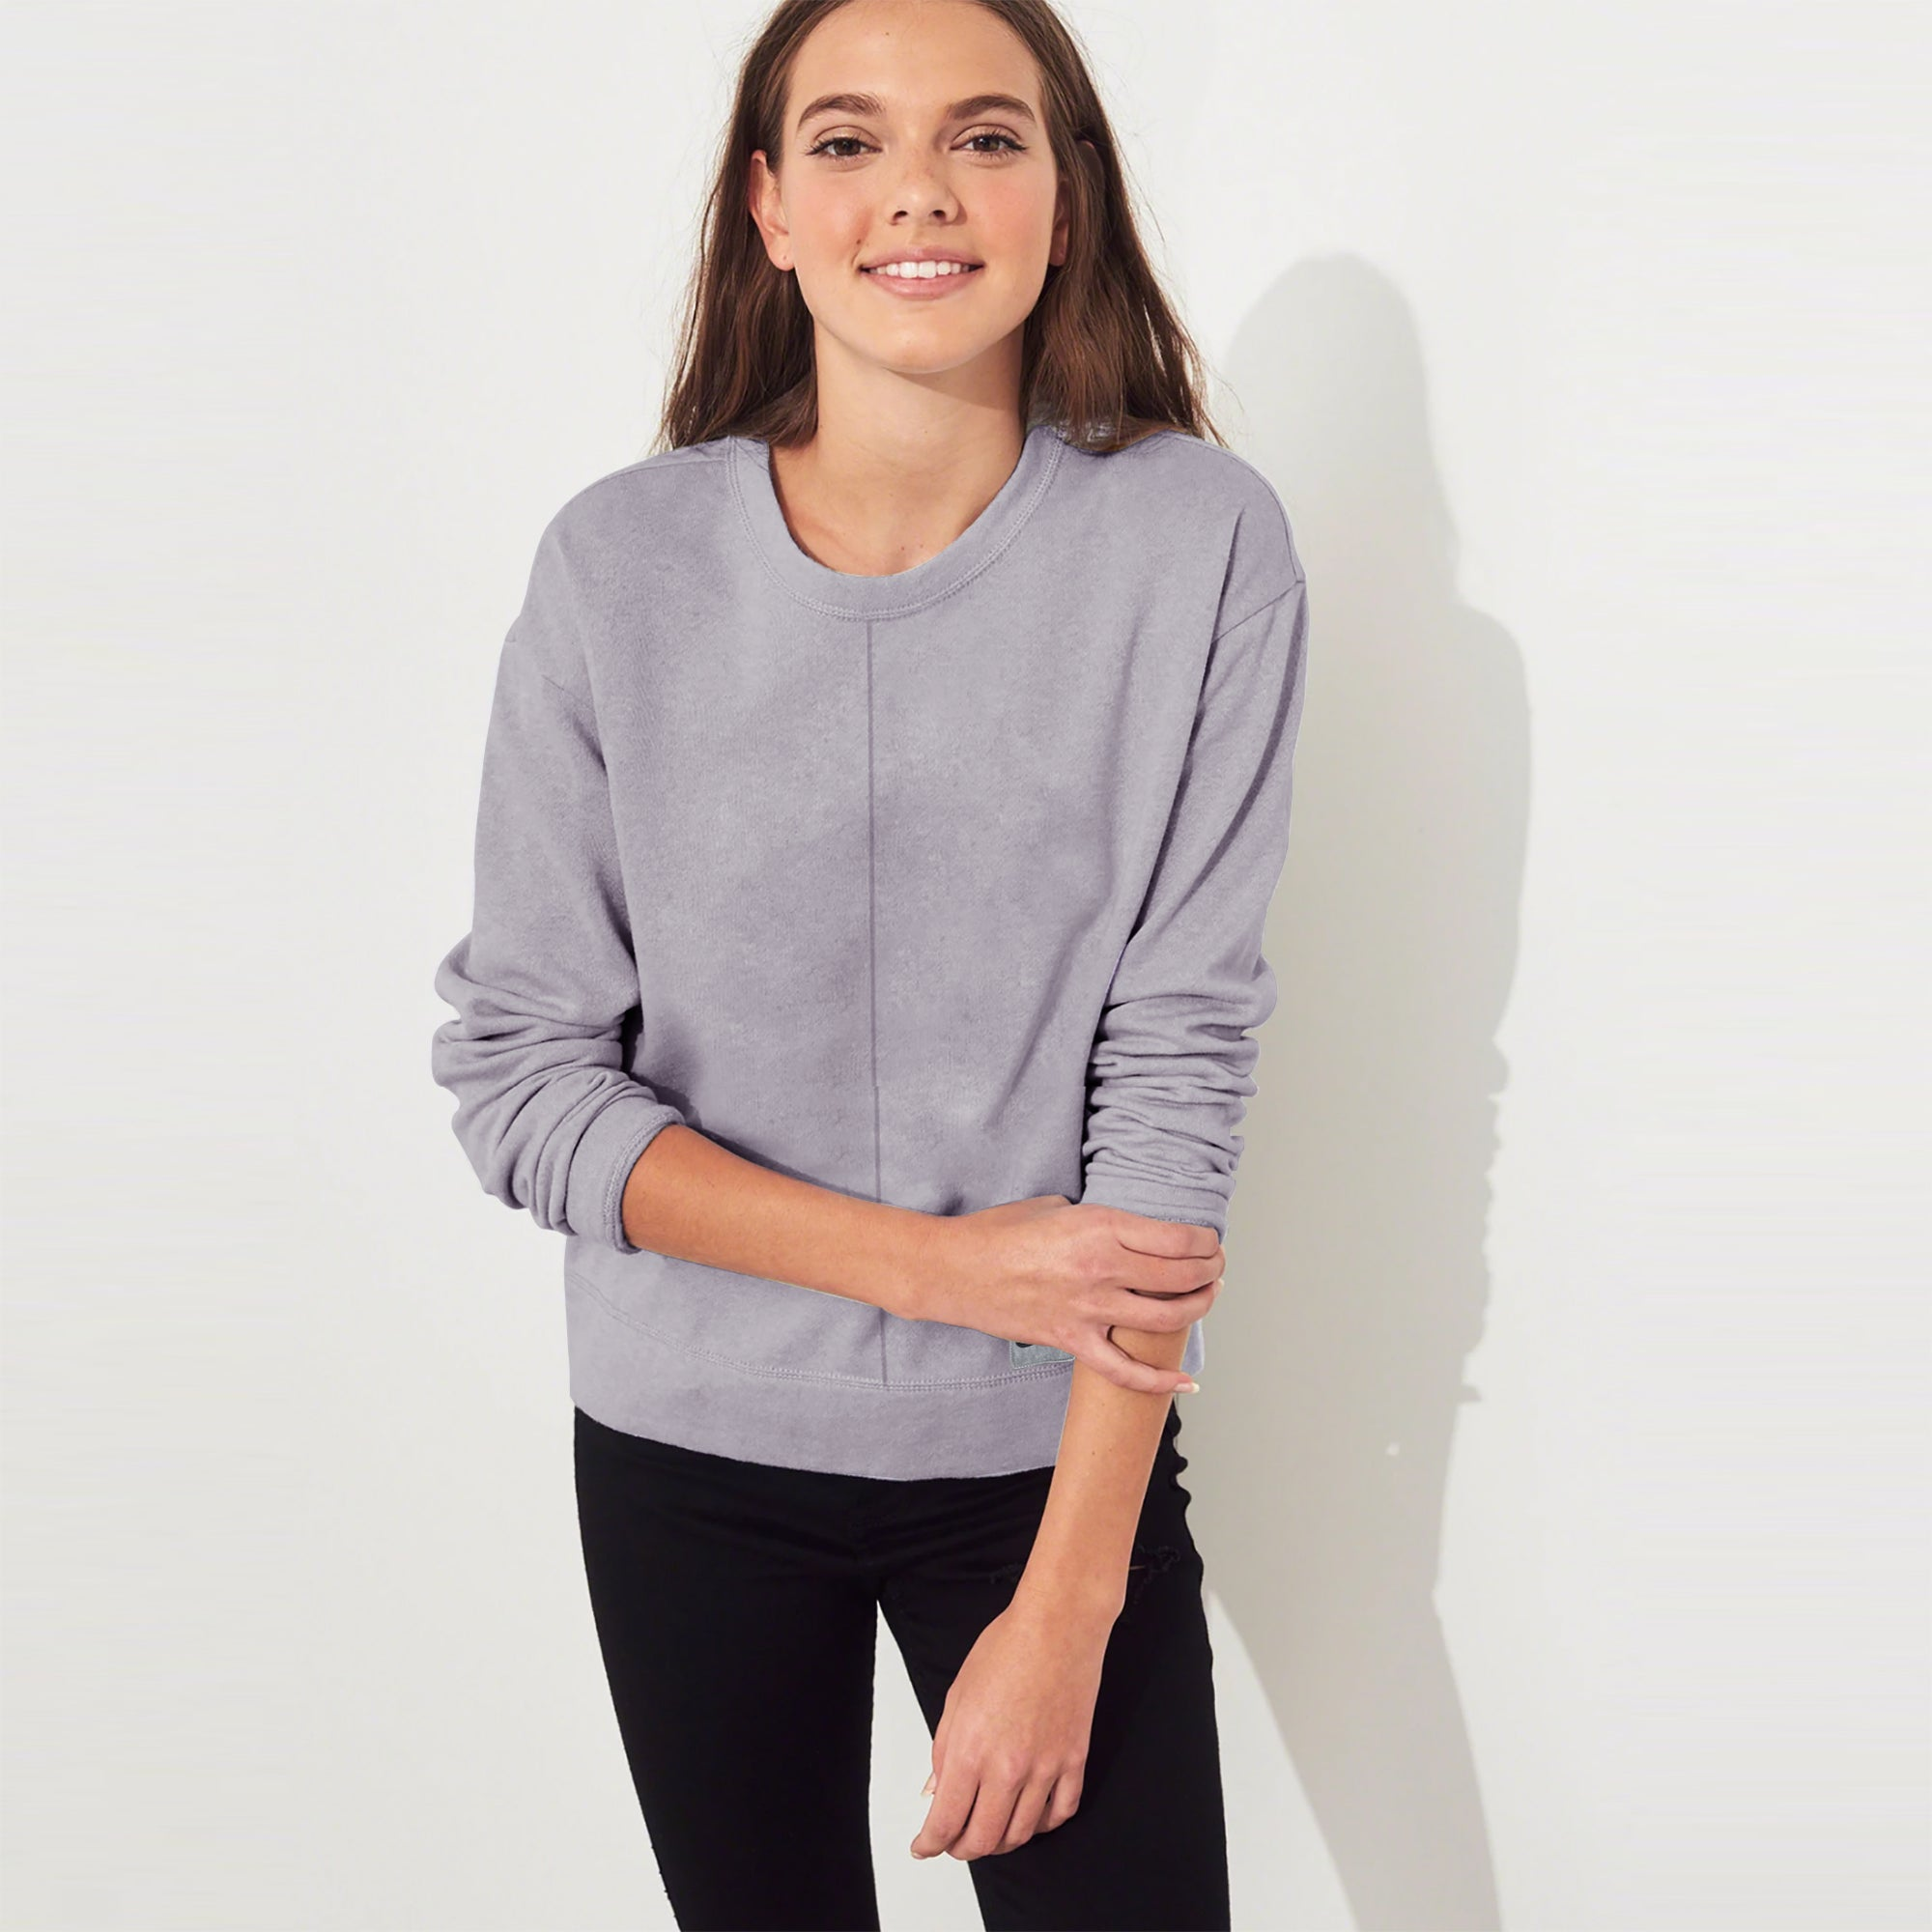 NK Terry Fleece Sweatshirt For Women-Dark Lavender Blush-SP1131